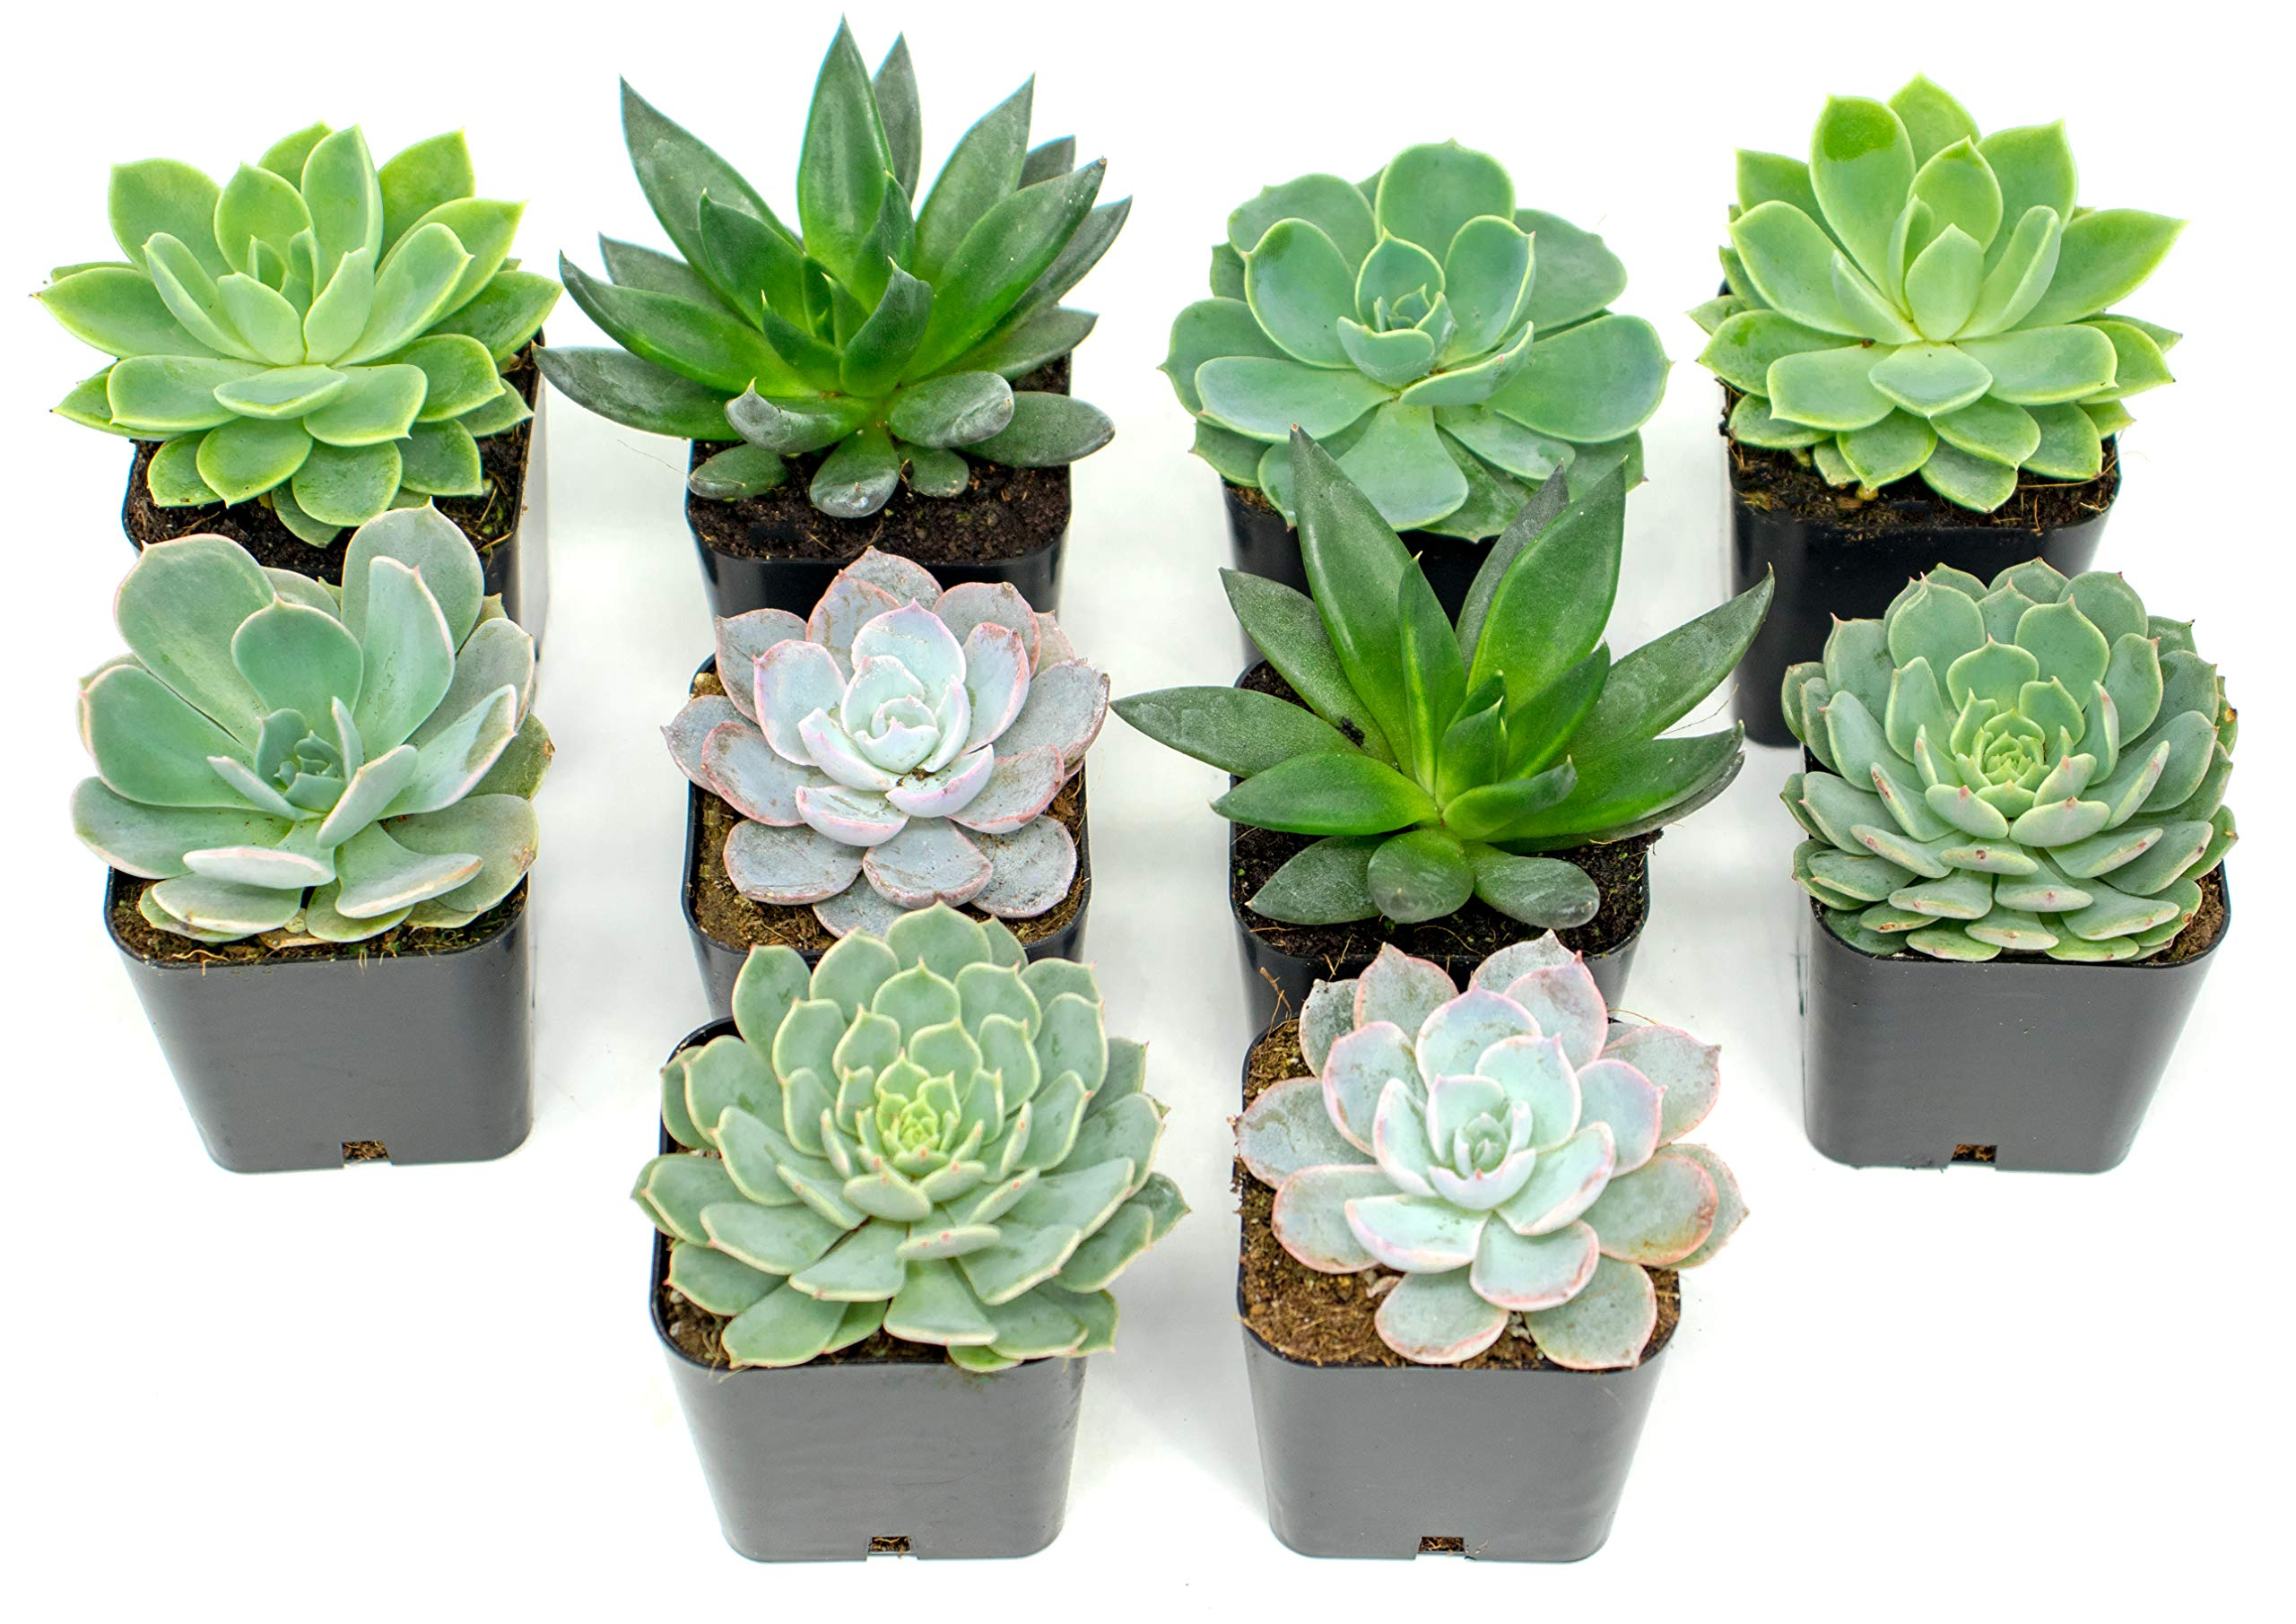 Succulent Plants | 10 Echeveria Succulents | Rooted in Planter Pots with Soil | Real Live Indoor Plants | Gifts or Room Decor by Plants for Pets